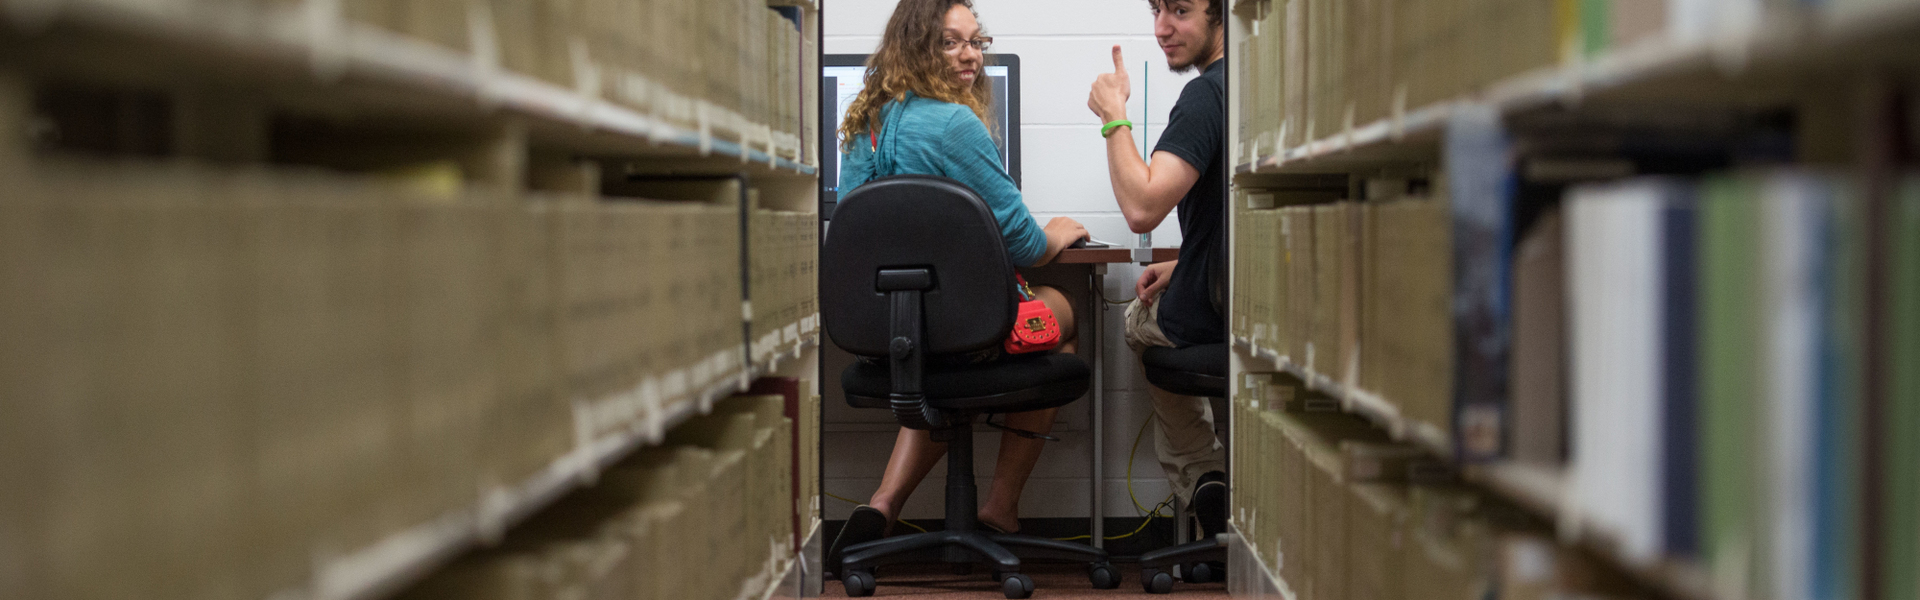 Students in the stacks of McIntyre library